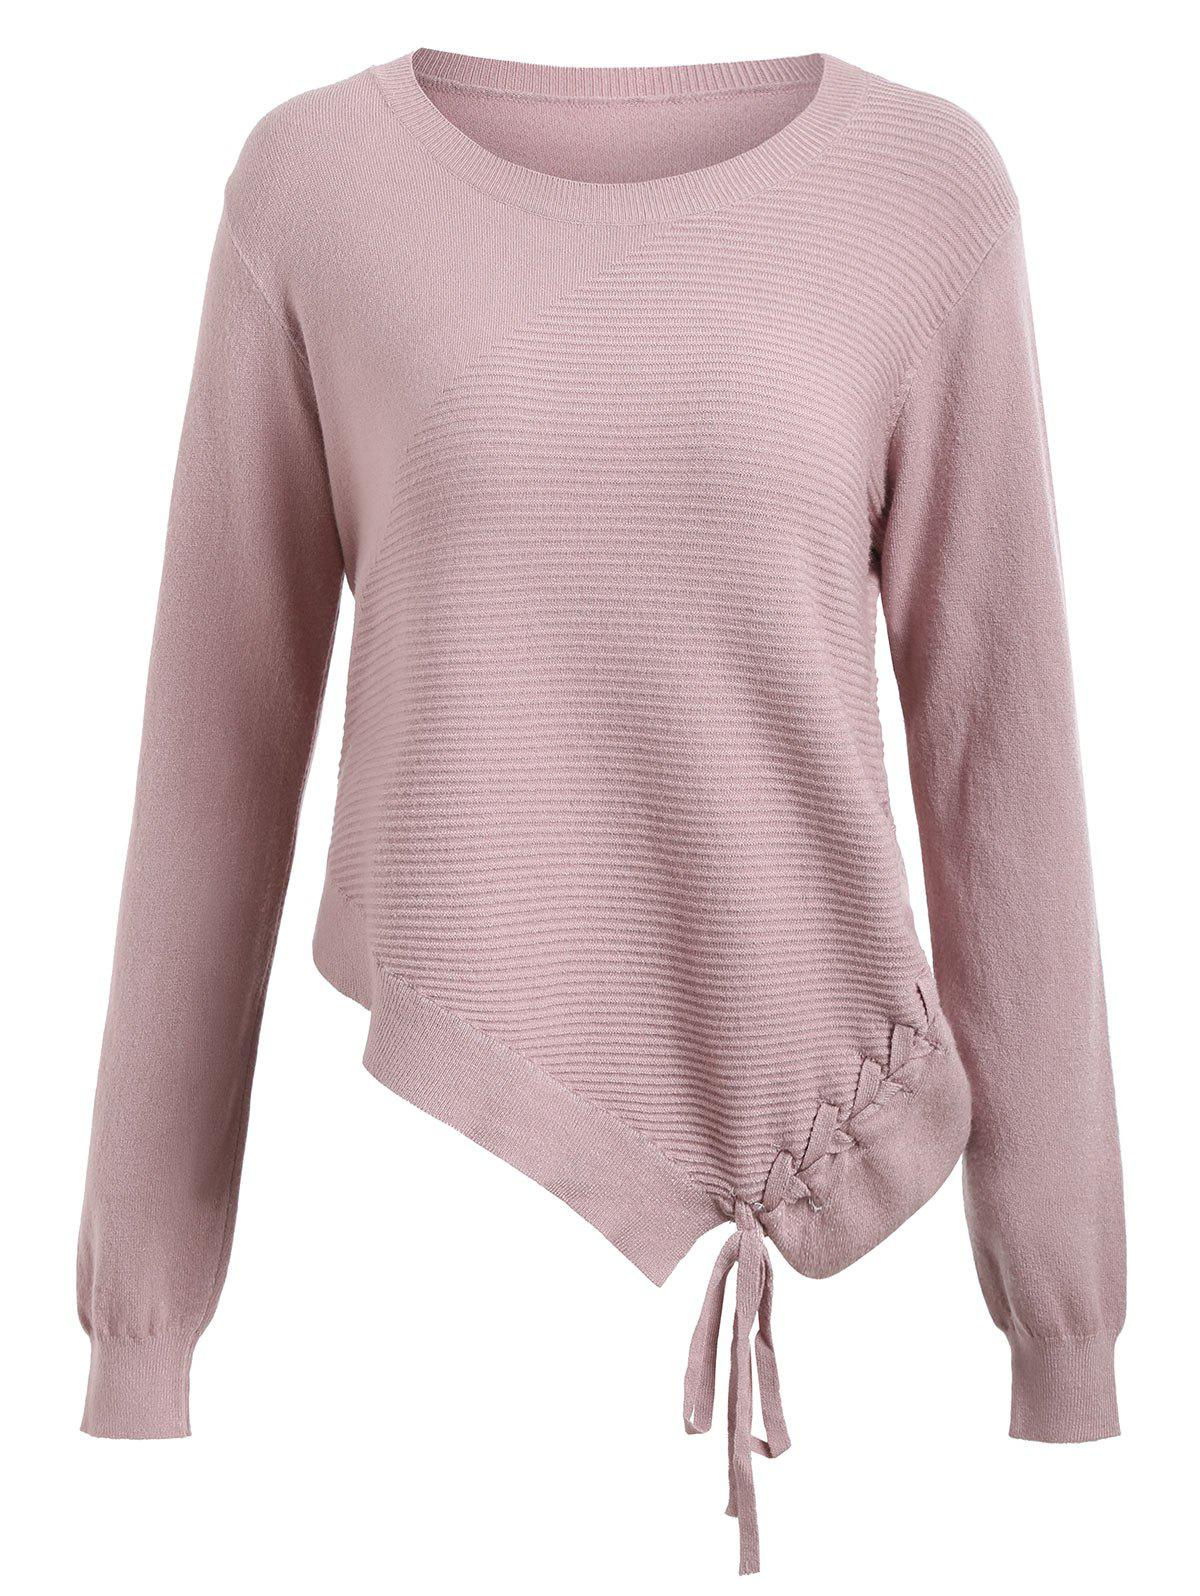 Asymmetric Lace-up Knitted Sweater - PINK ONE SIZE